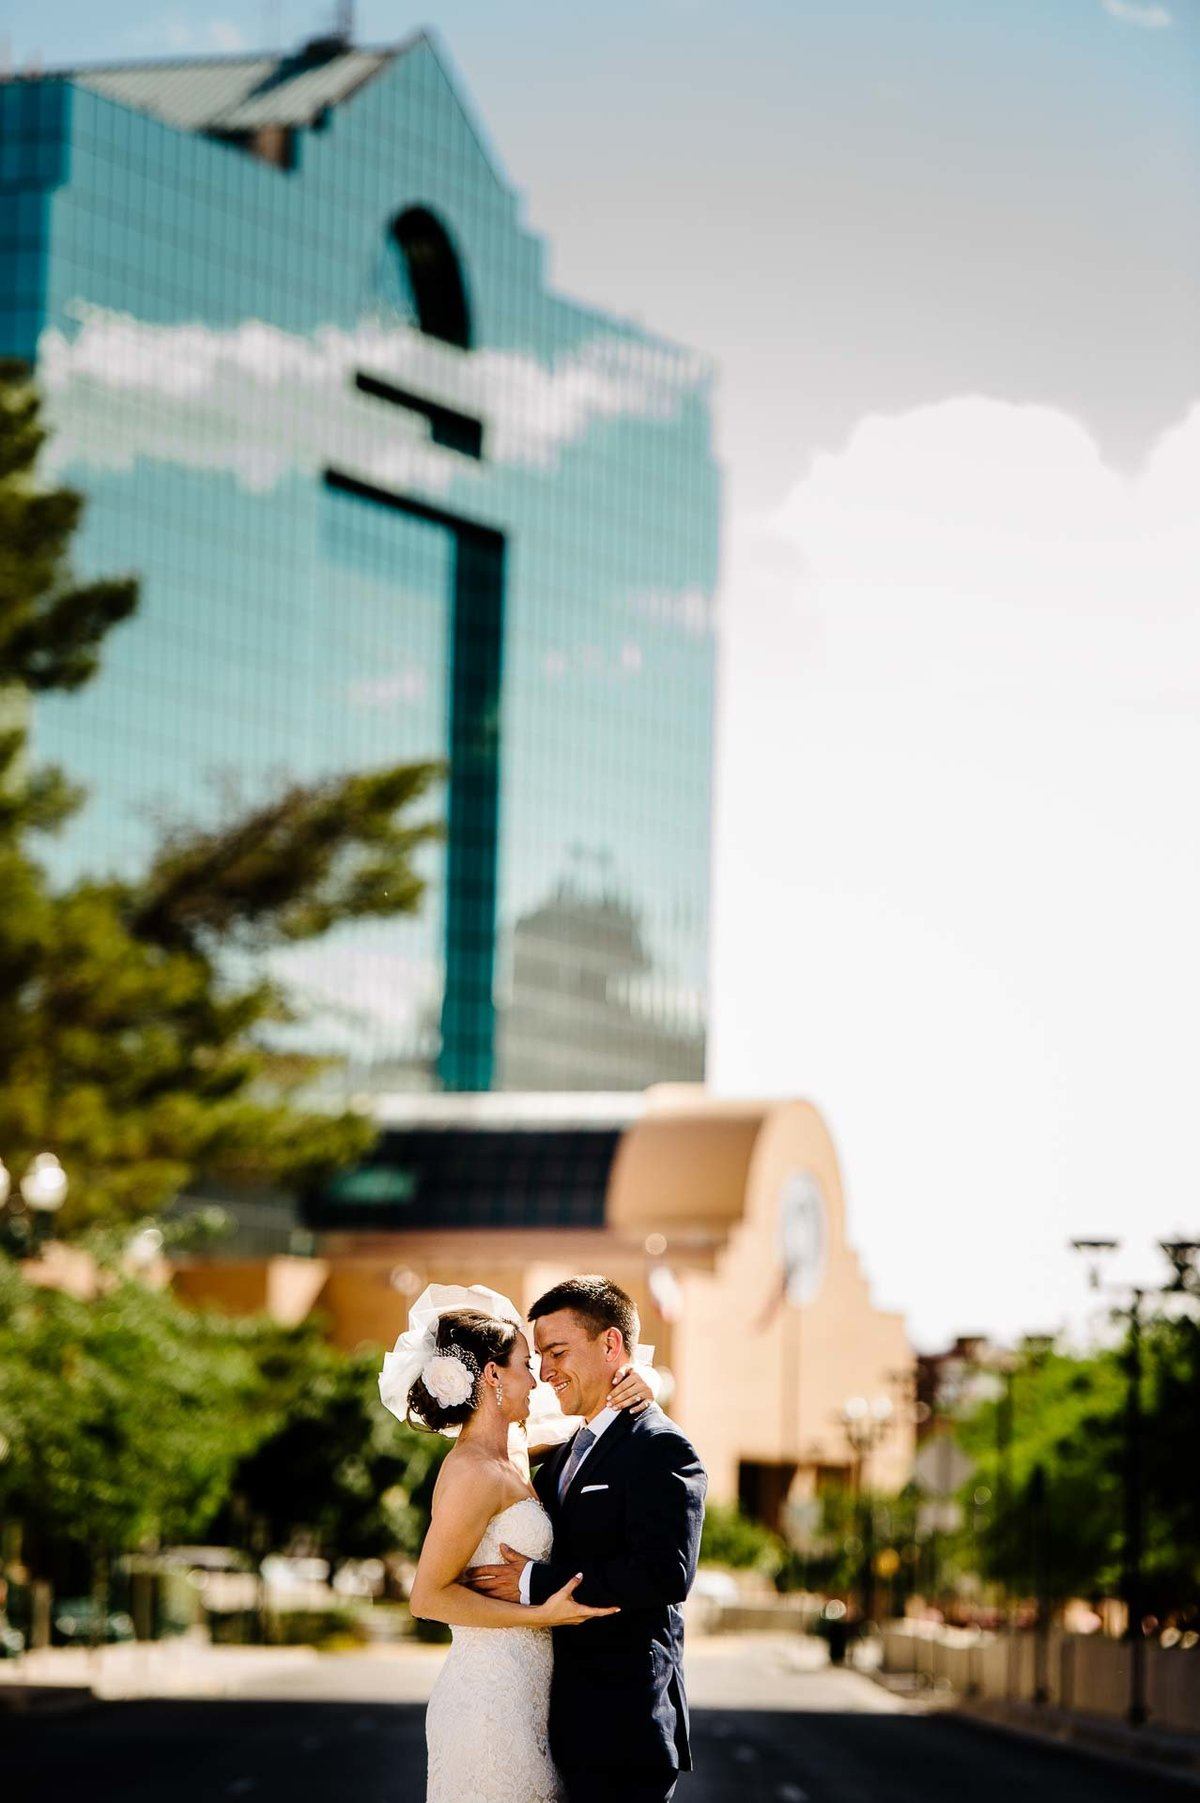 WEDDING AT EPIC RAILYARD IN EL PASO TEXAS-wedding-photography-stephane-lemaire_20